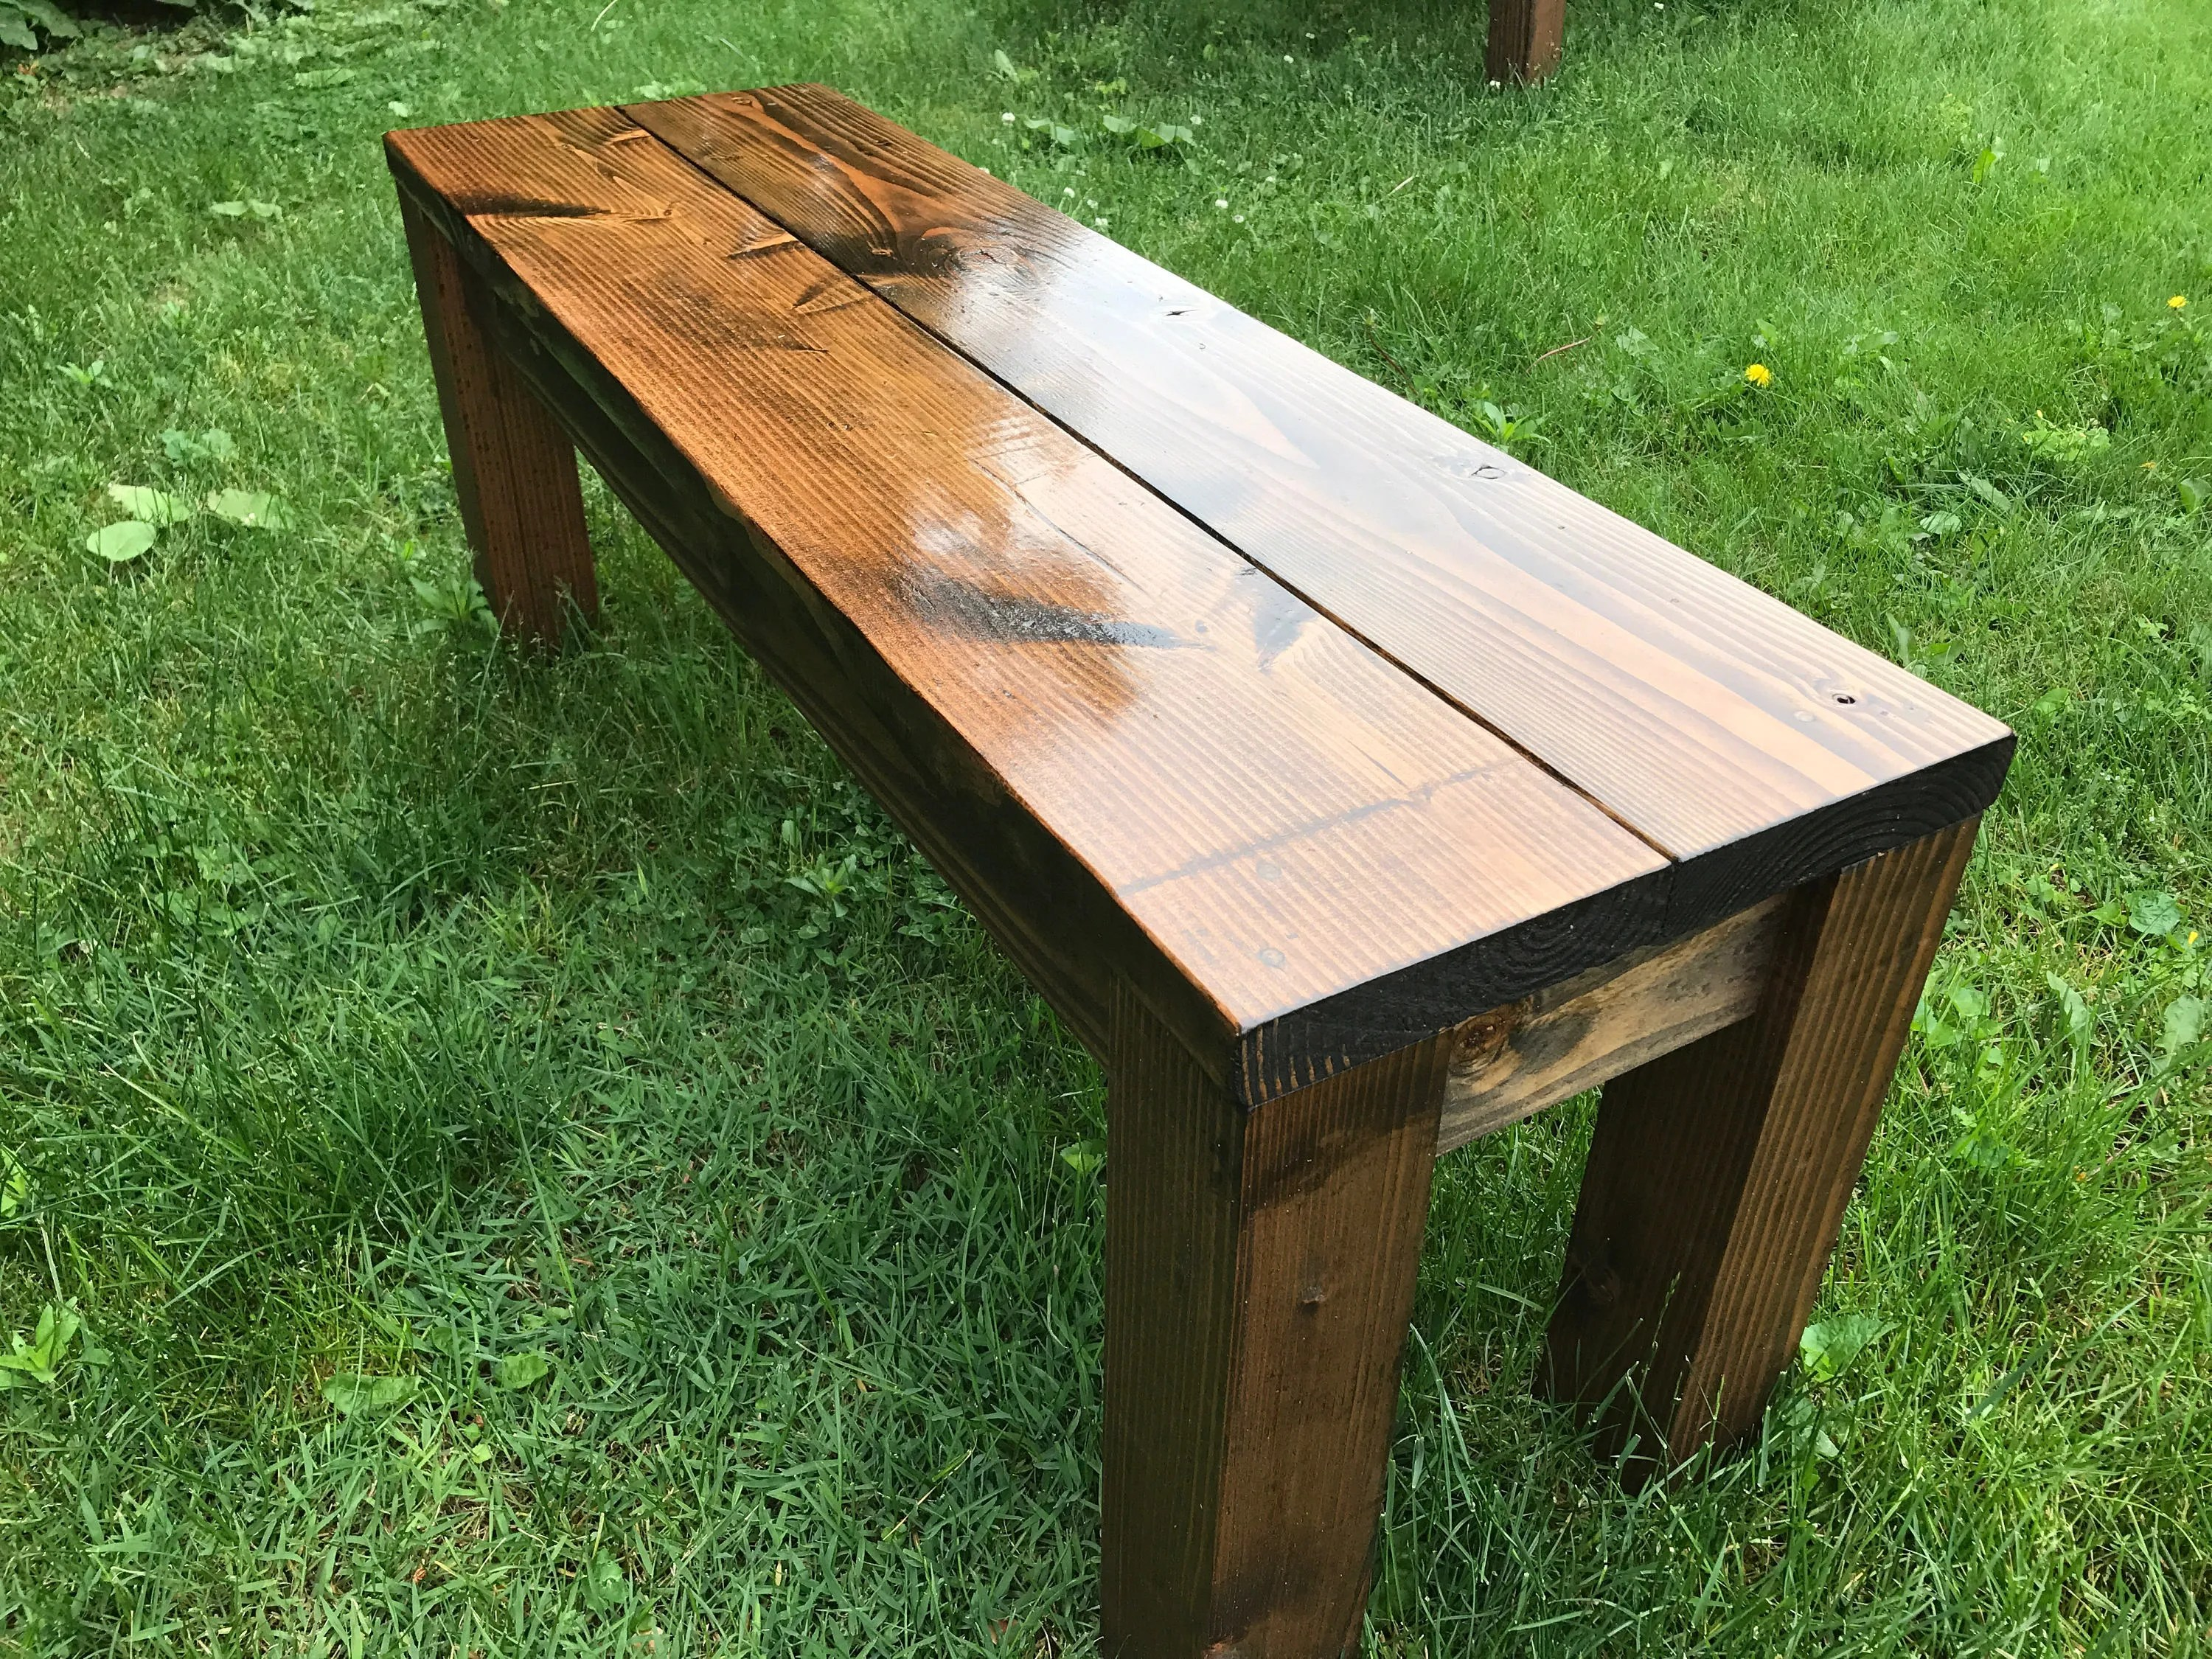 Wooden Bench Table Rustic Bench Farm Bench Farmhouse Bench Farm Table Bench Wood Bench Wooden Bench Dining Room Bench Entryway Bench Farm Decor